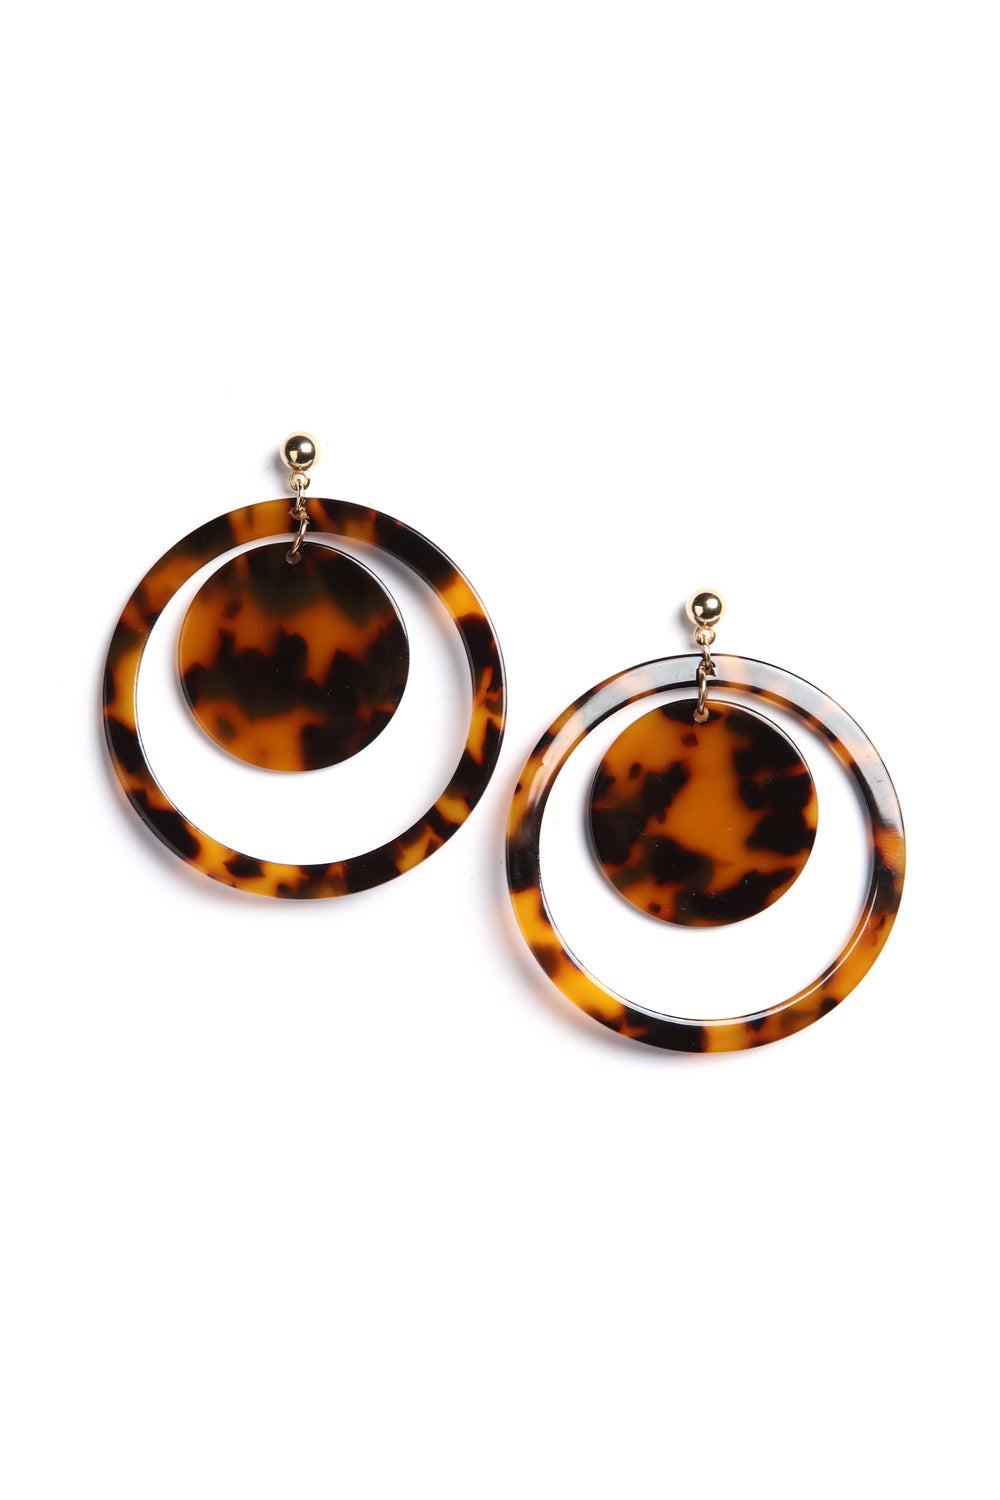 Let's Circle Back Earrings - Brown